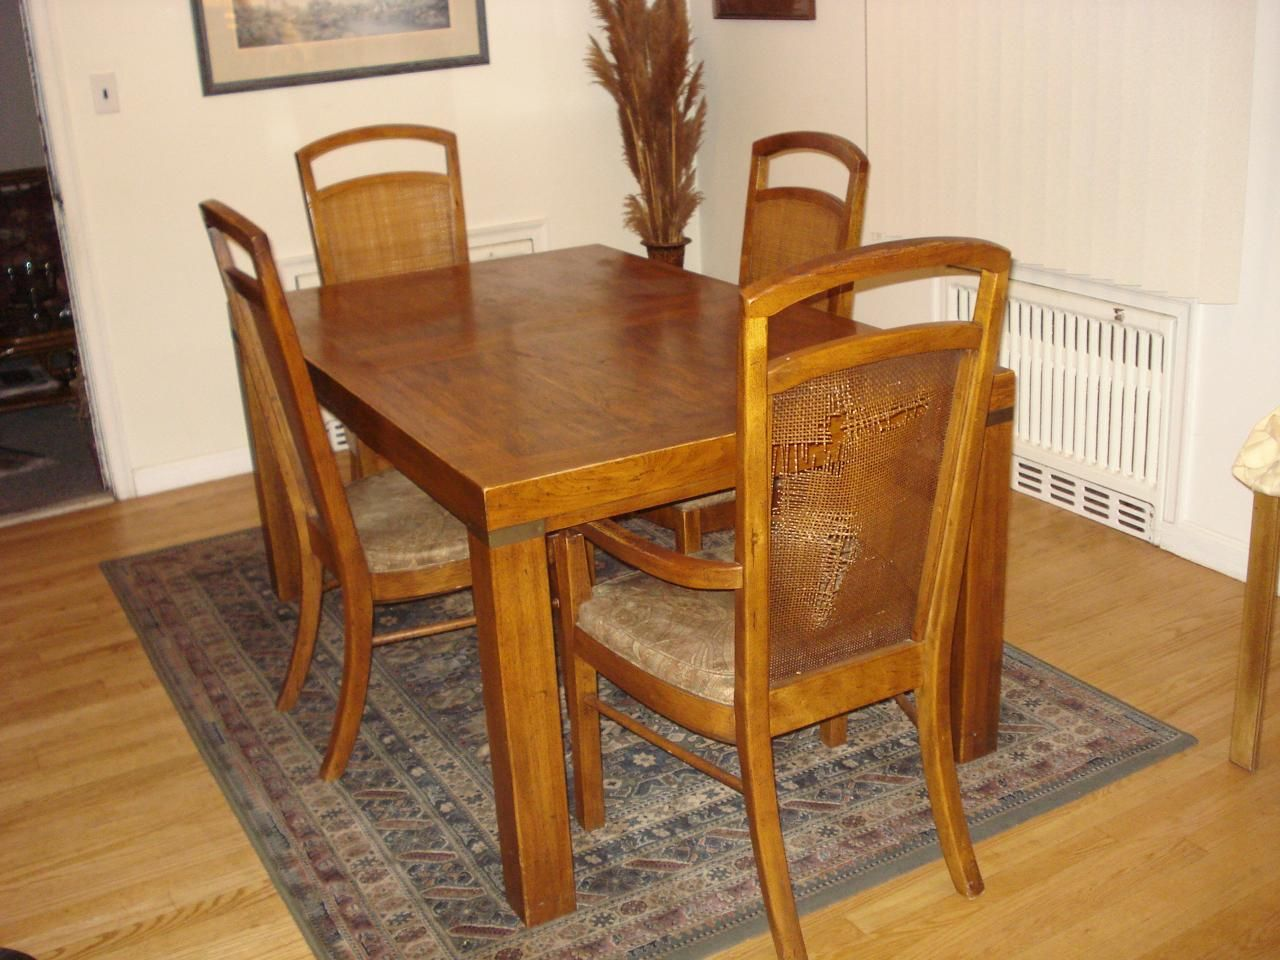 Retro Furniture Dining Room Sets And Room Set On Pinterest Extraordinary Heritage Dining Room Furniture Review